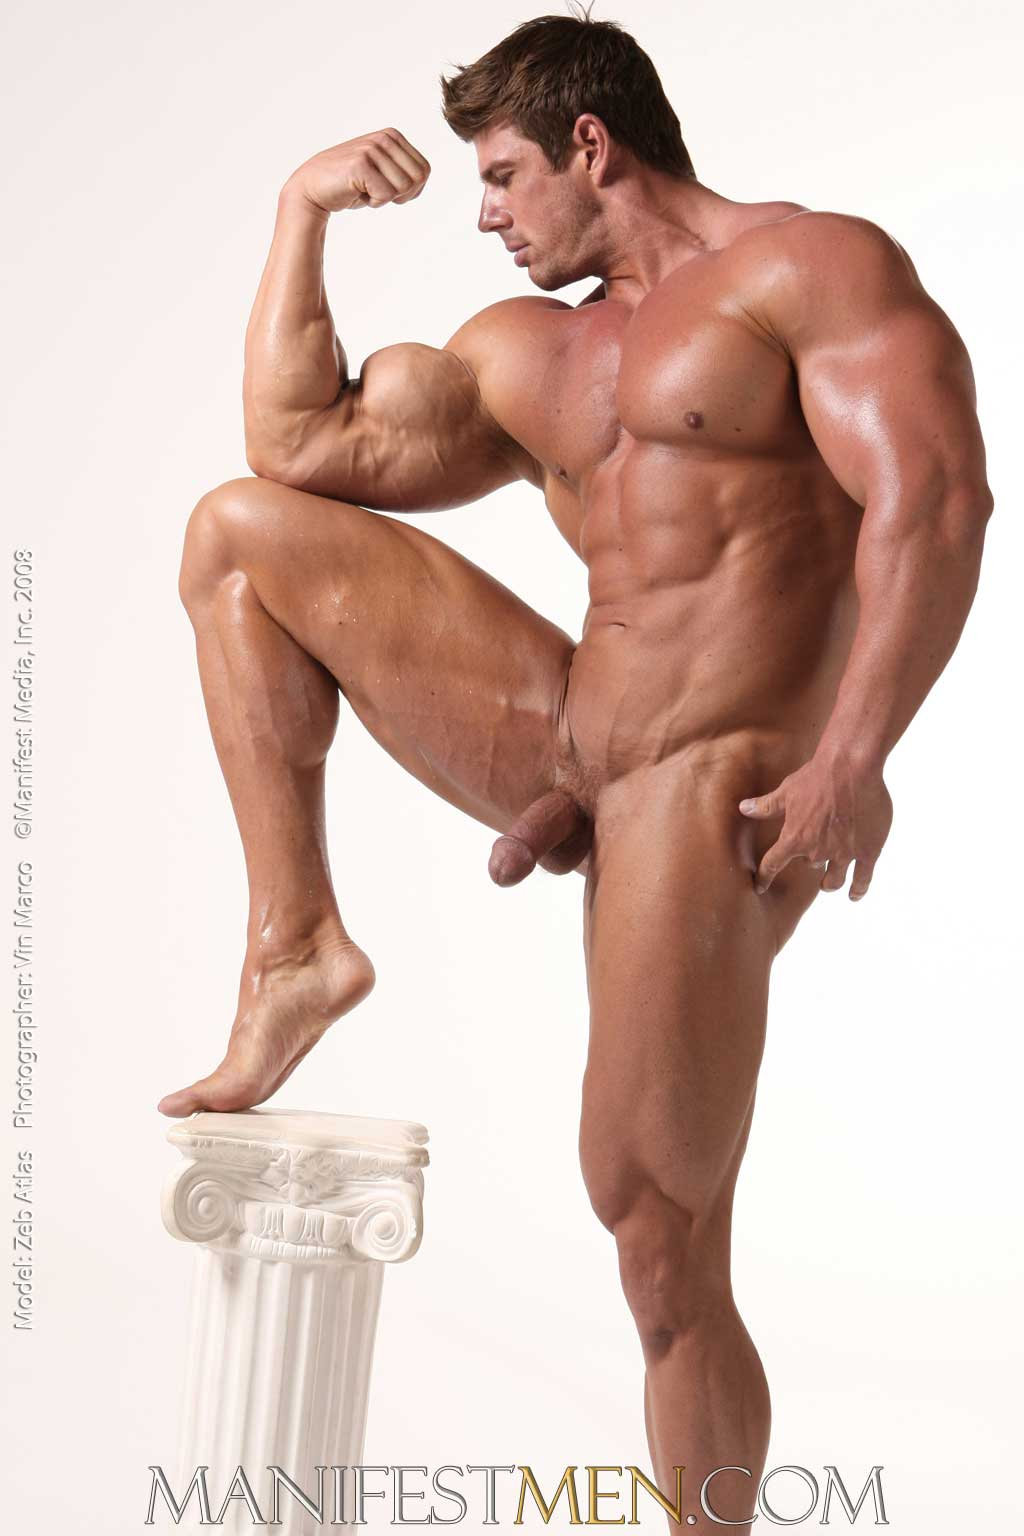 Best Male Videos - Muscle Men, Bodybuilders, Fitness Models